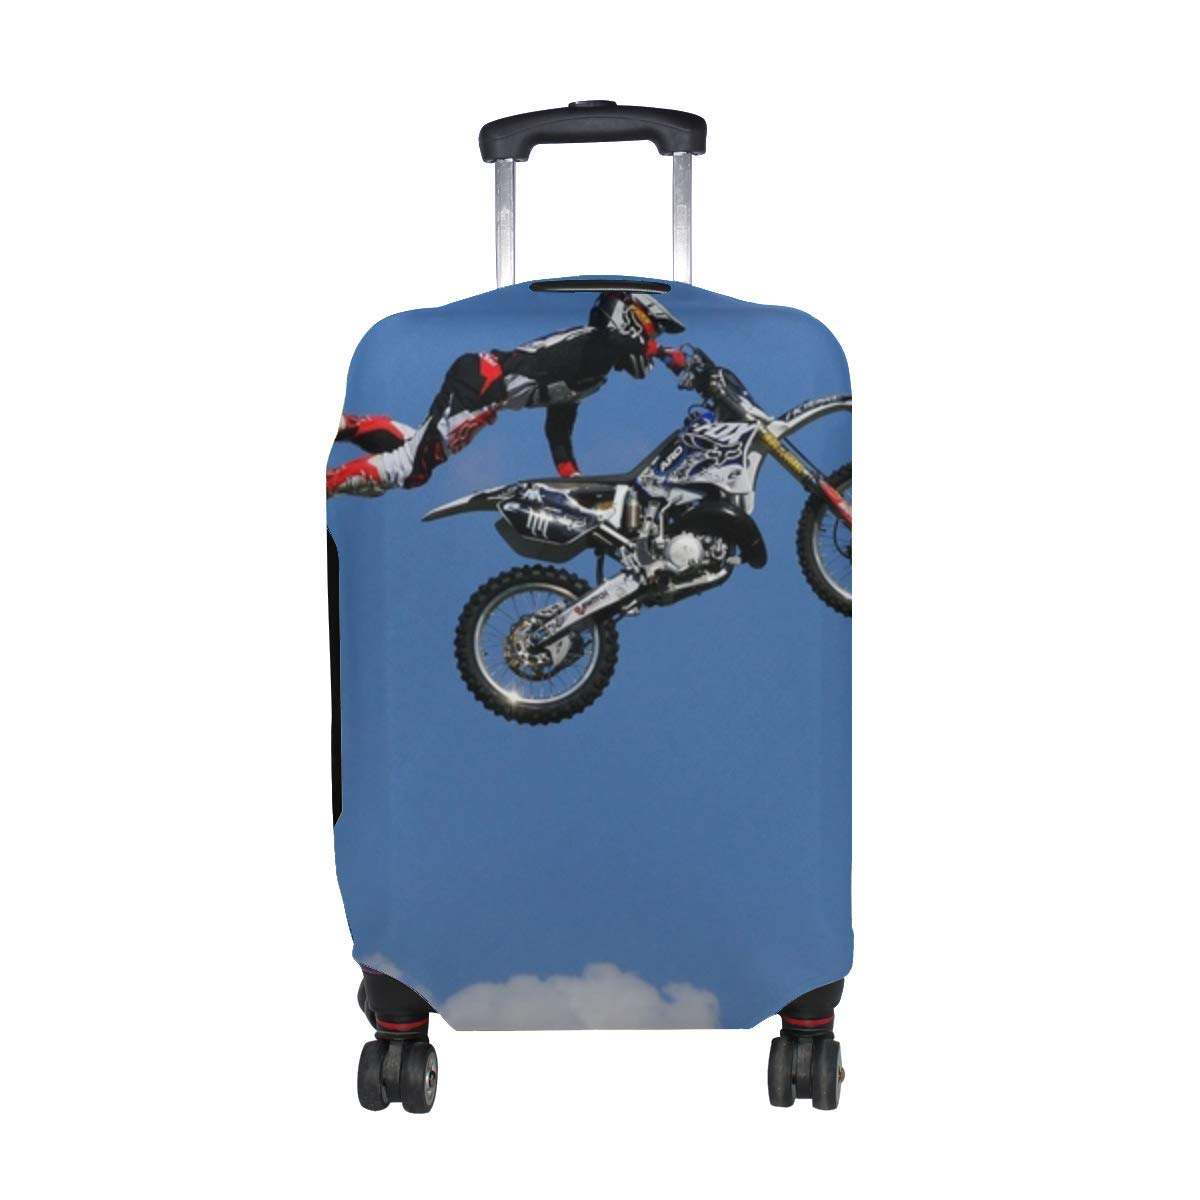 Man Jump Motocross Motorcycle Pattern Print Travel Luggage Protector Baggage Suitcase Cover Fits 18-21 Inch Luggage